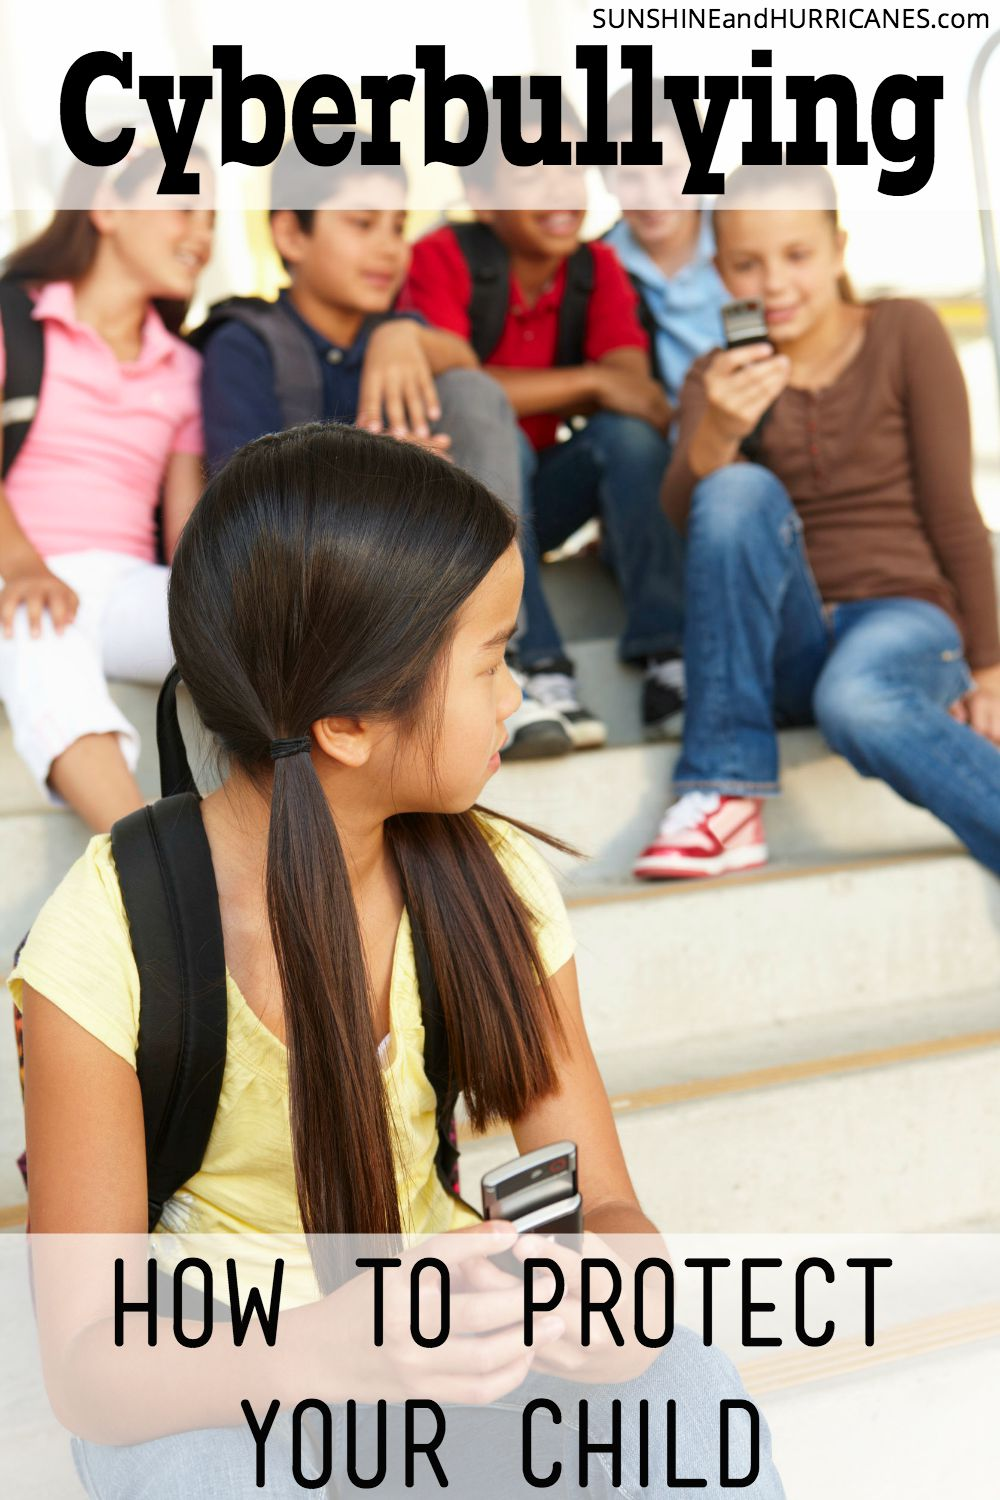 Did you know some studies show that more than half of kids with experience cyberbullying during their adolescence? There are actually some really easy ways for parents to protect their kids and keep them protected from the downside of today's widespread technology use. Cyberbullying How to Protect Your Kids. SunshineandHurricanes.com